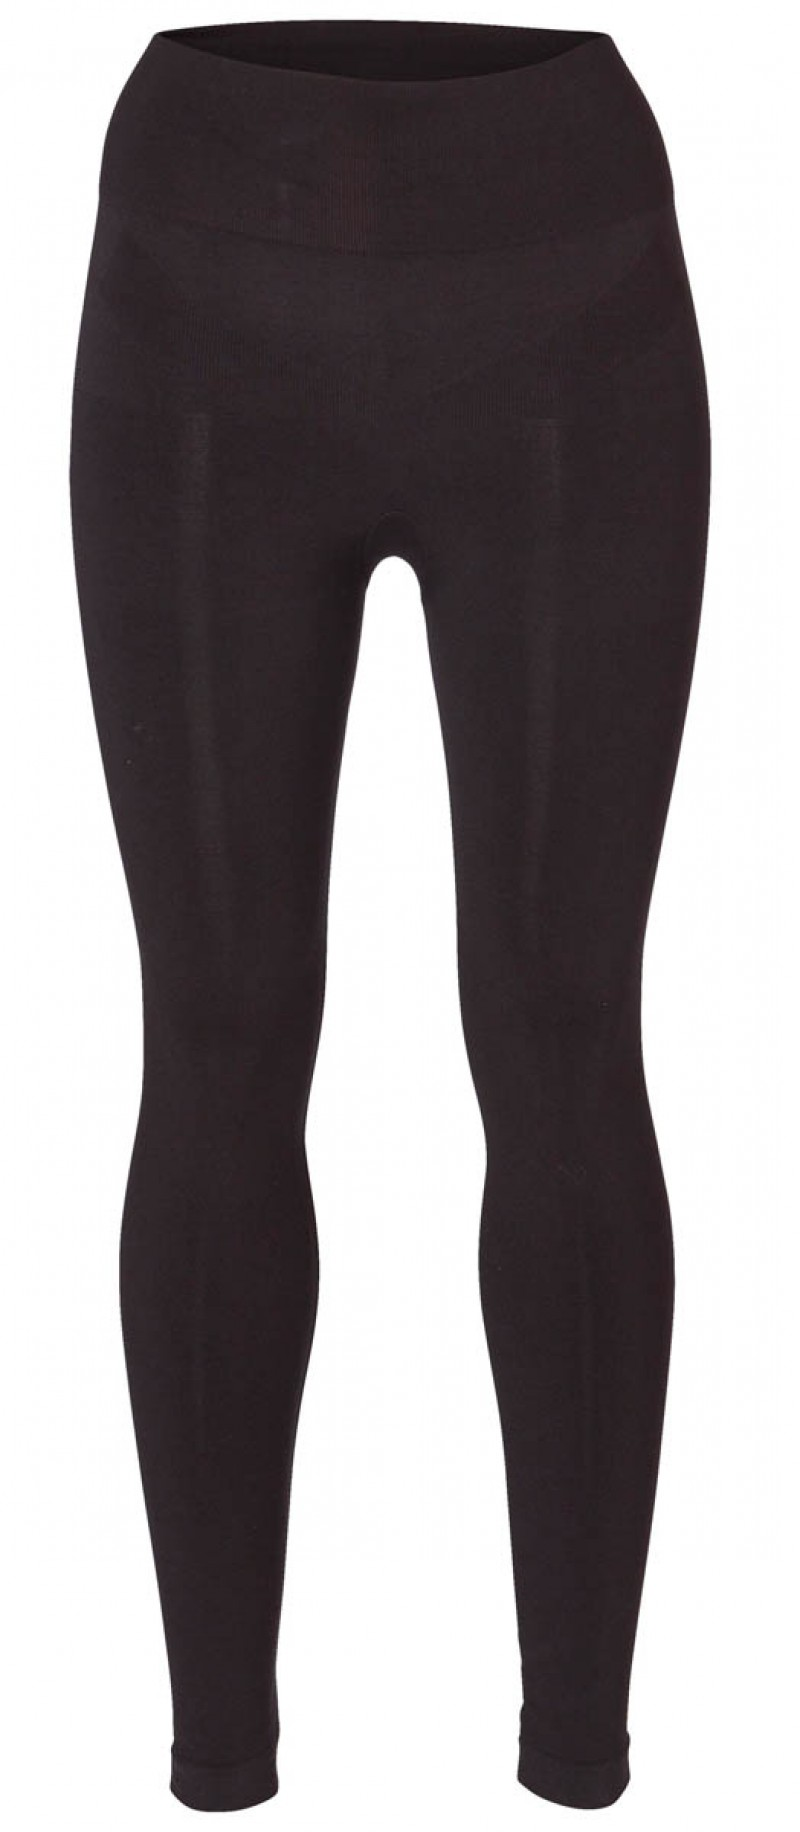 Vero Moda Leggings - Fix IT - schwarz